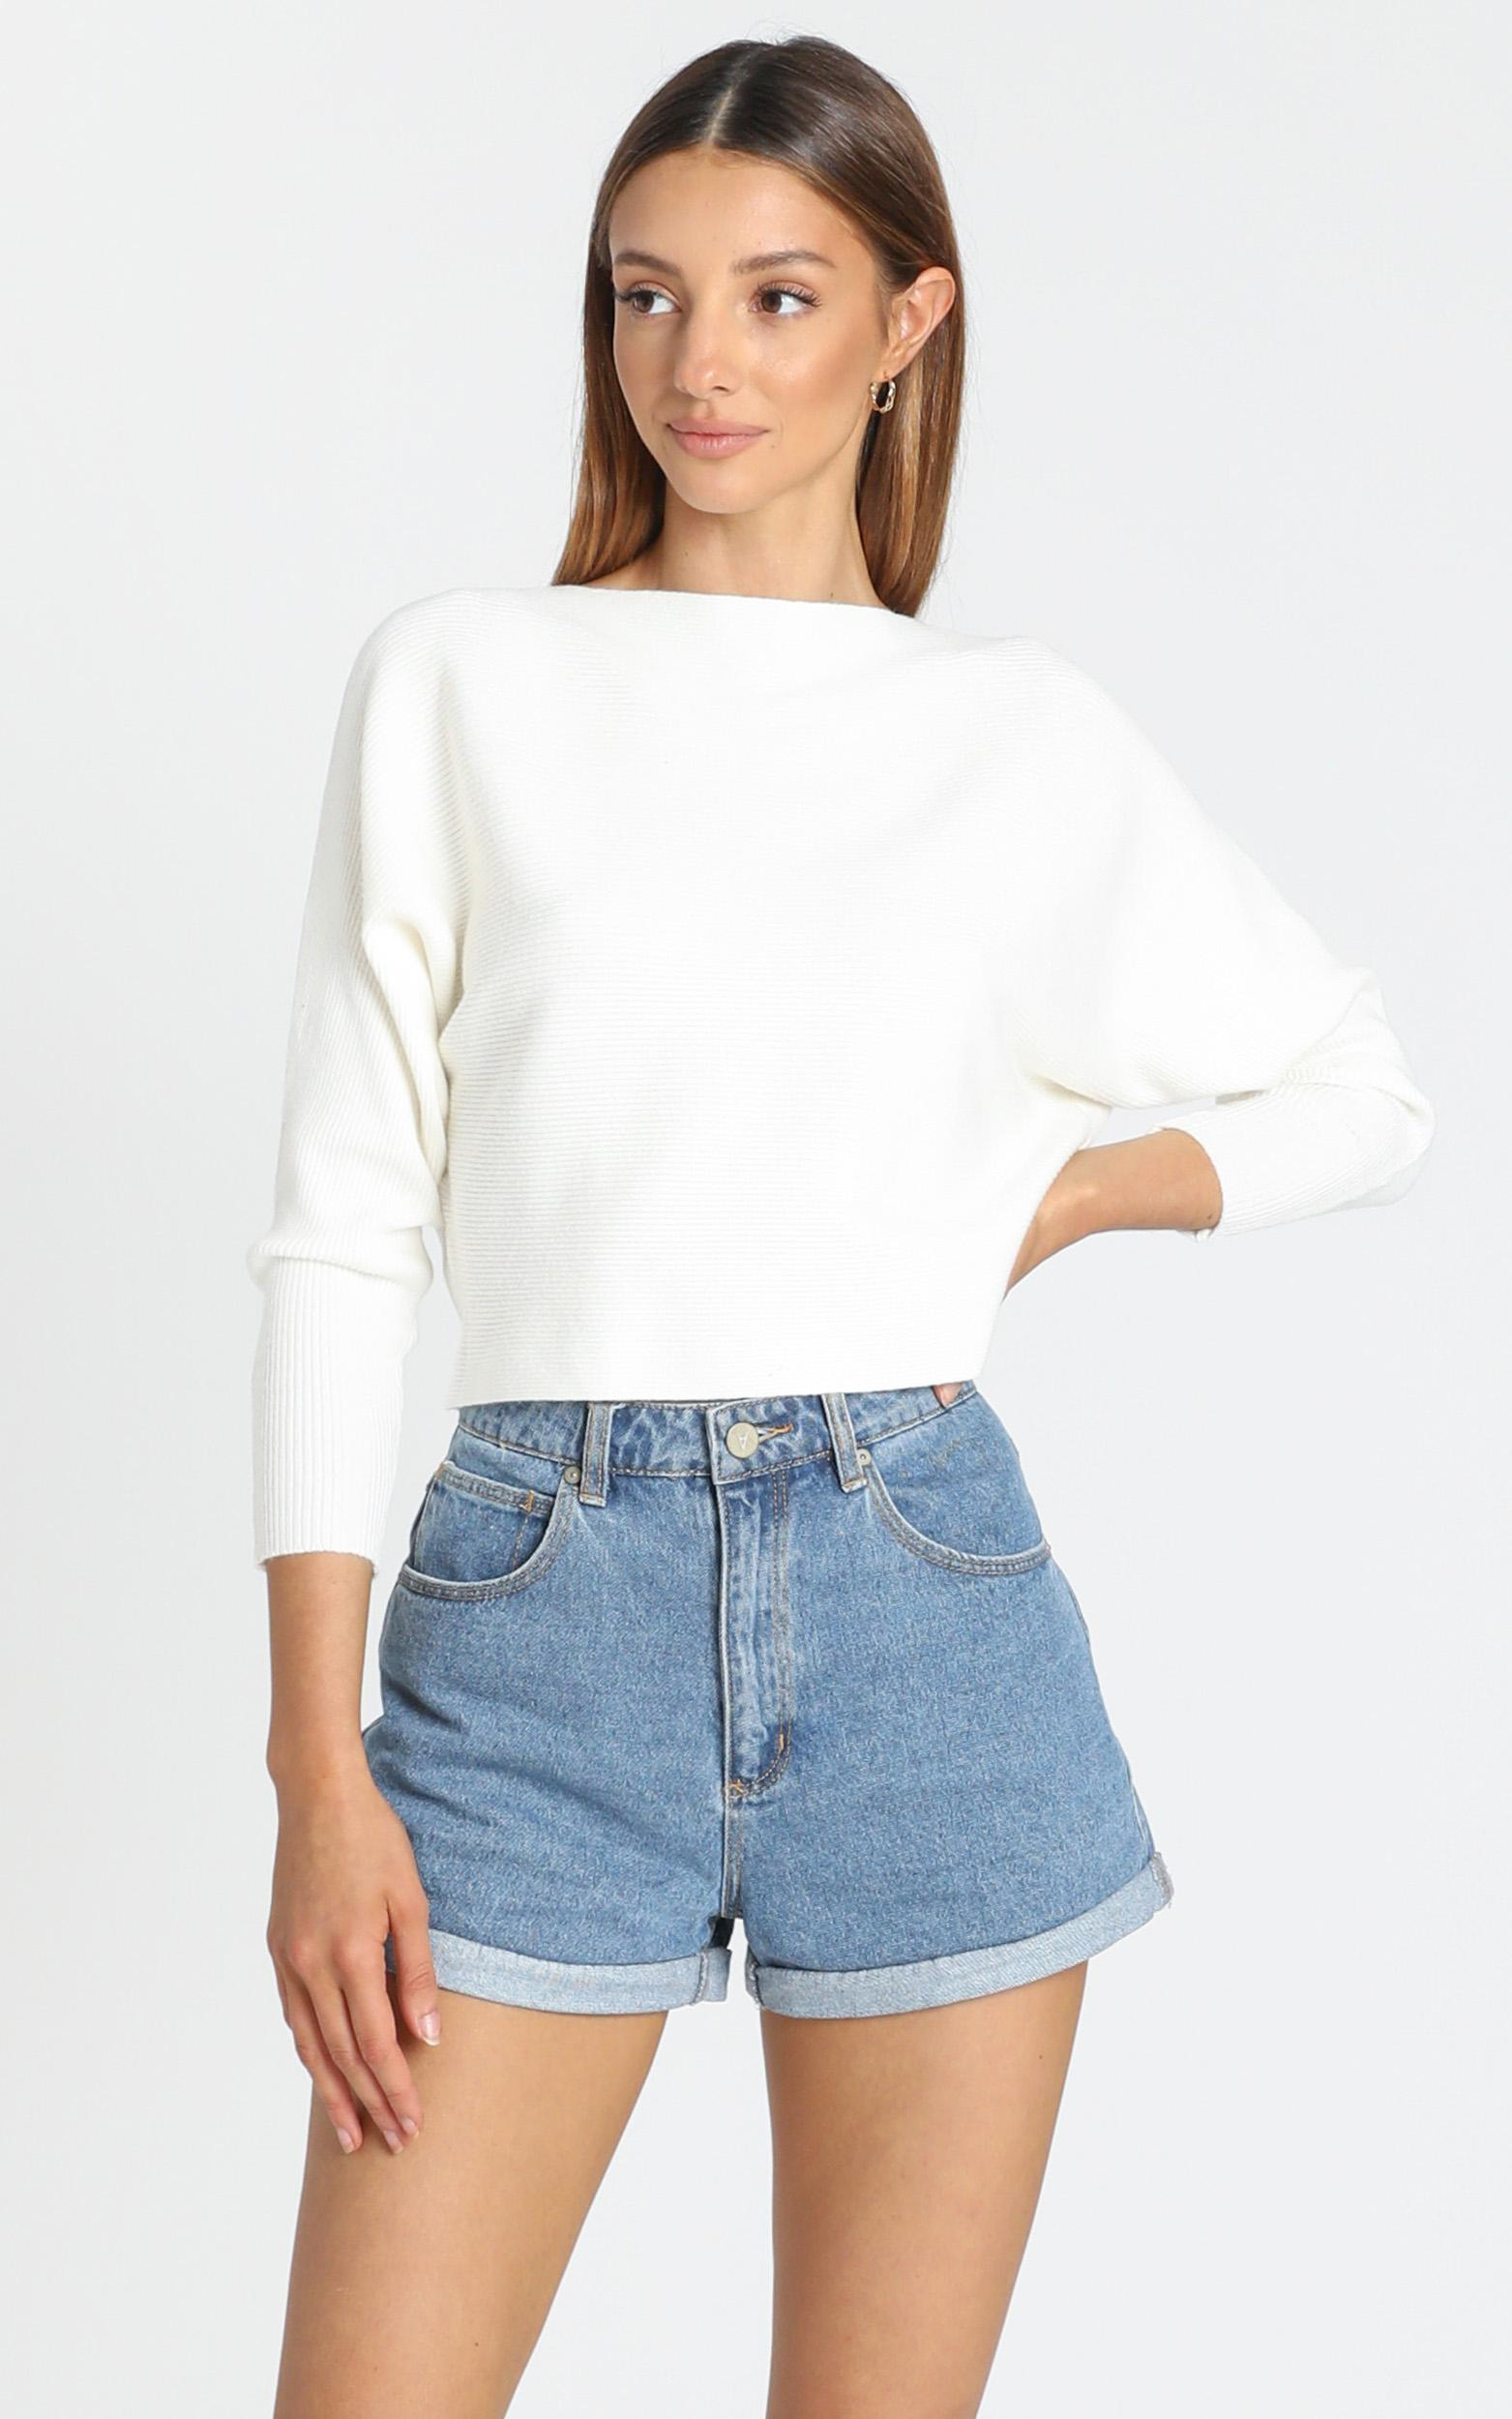 Crissy Jumper in White - 8 (S), White, hi-res image number null